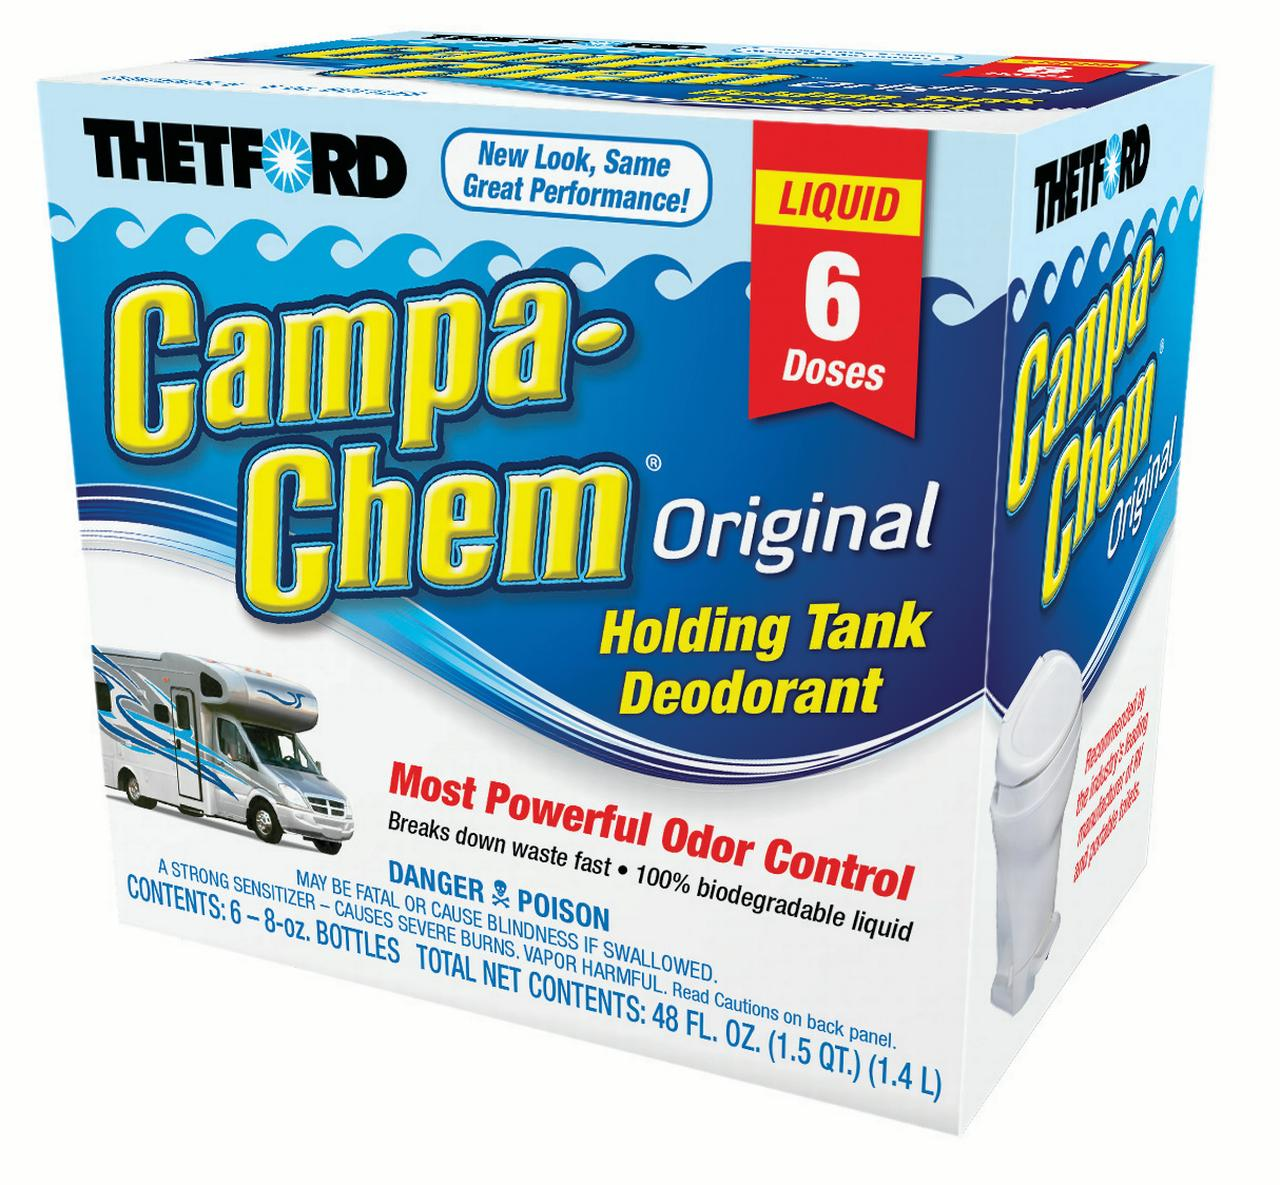 Campa-Chem RV Holding Tank Treatment - Deodorant / Waste Digester / Detergent - 6 x 8 oz pack - Thetford 13288